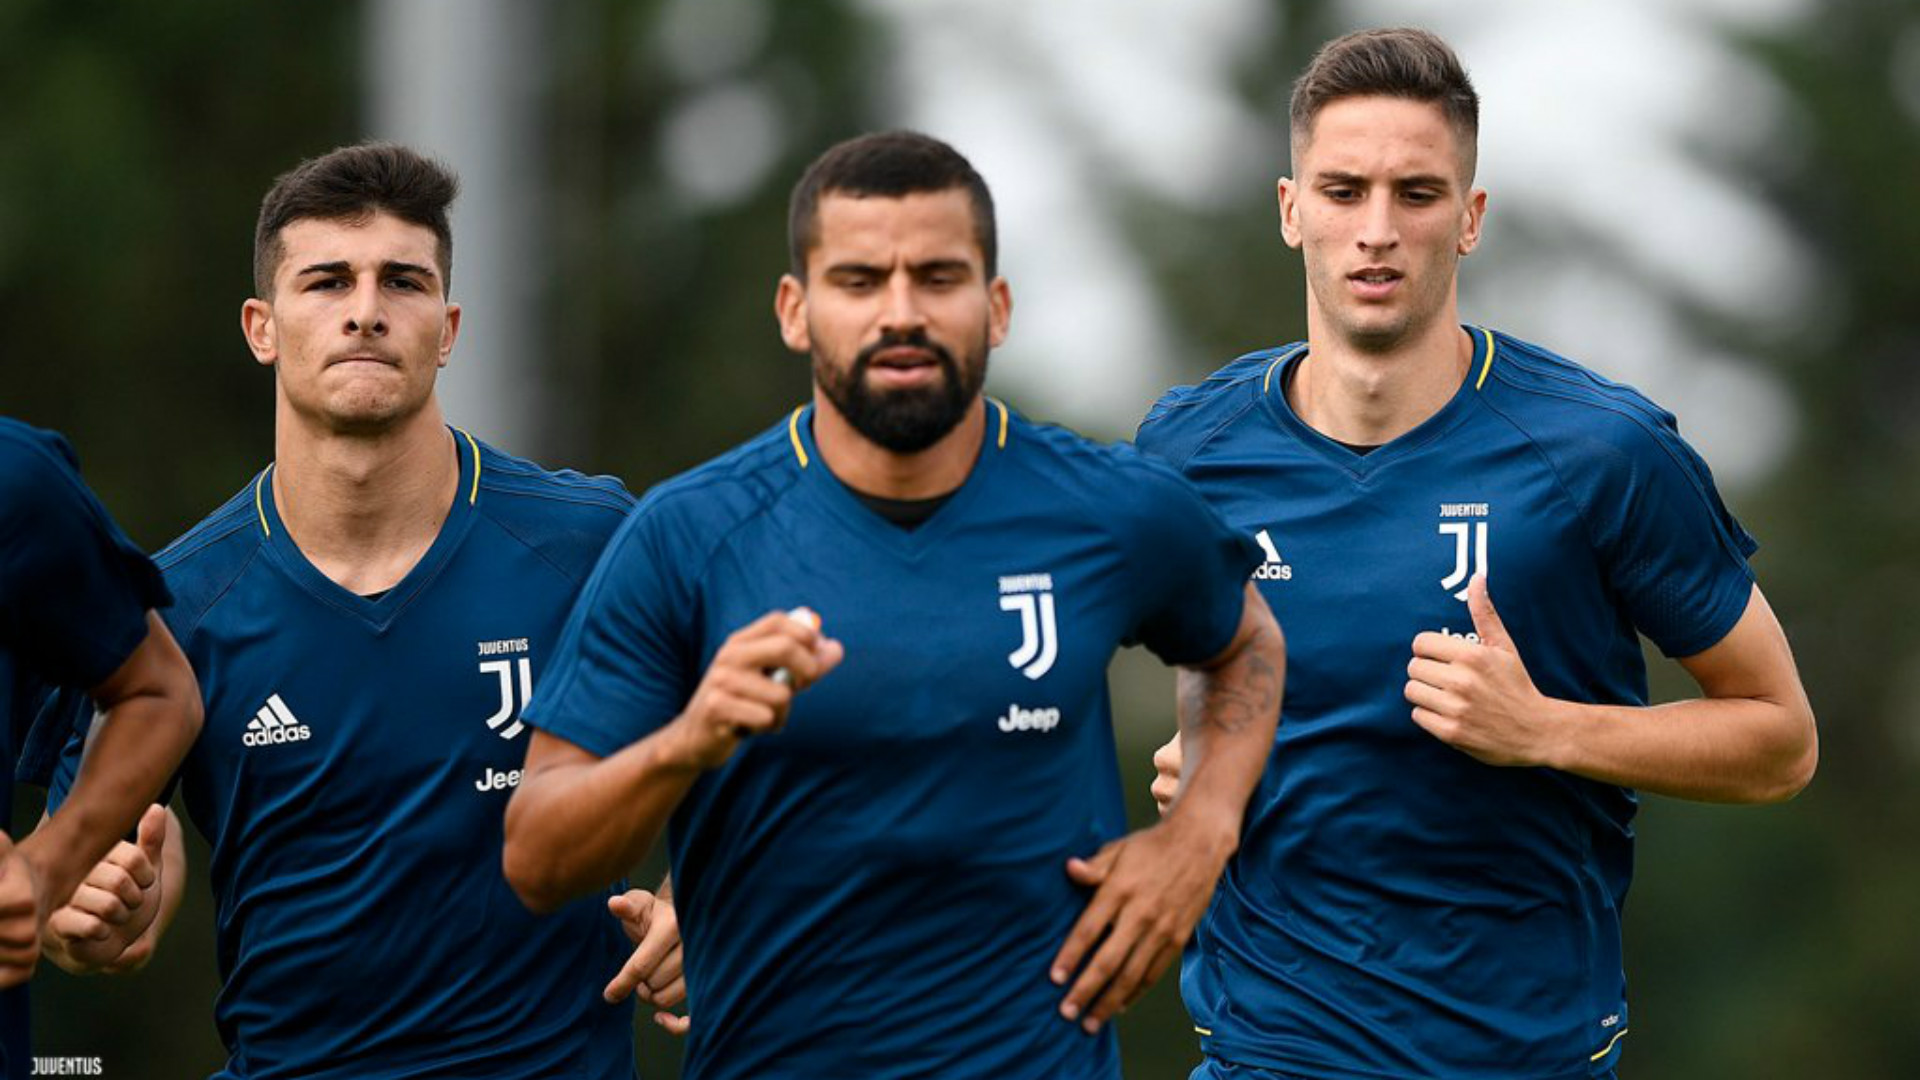 International Champions Cup 2017, dove vedere Juventus-Barcellona in Tv